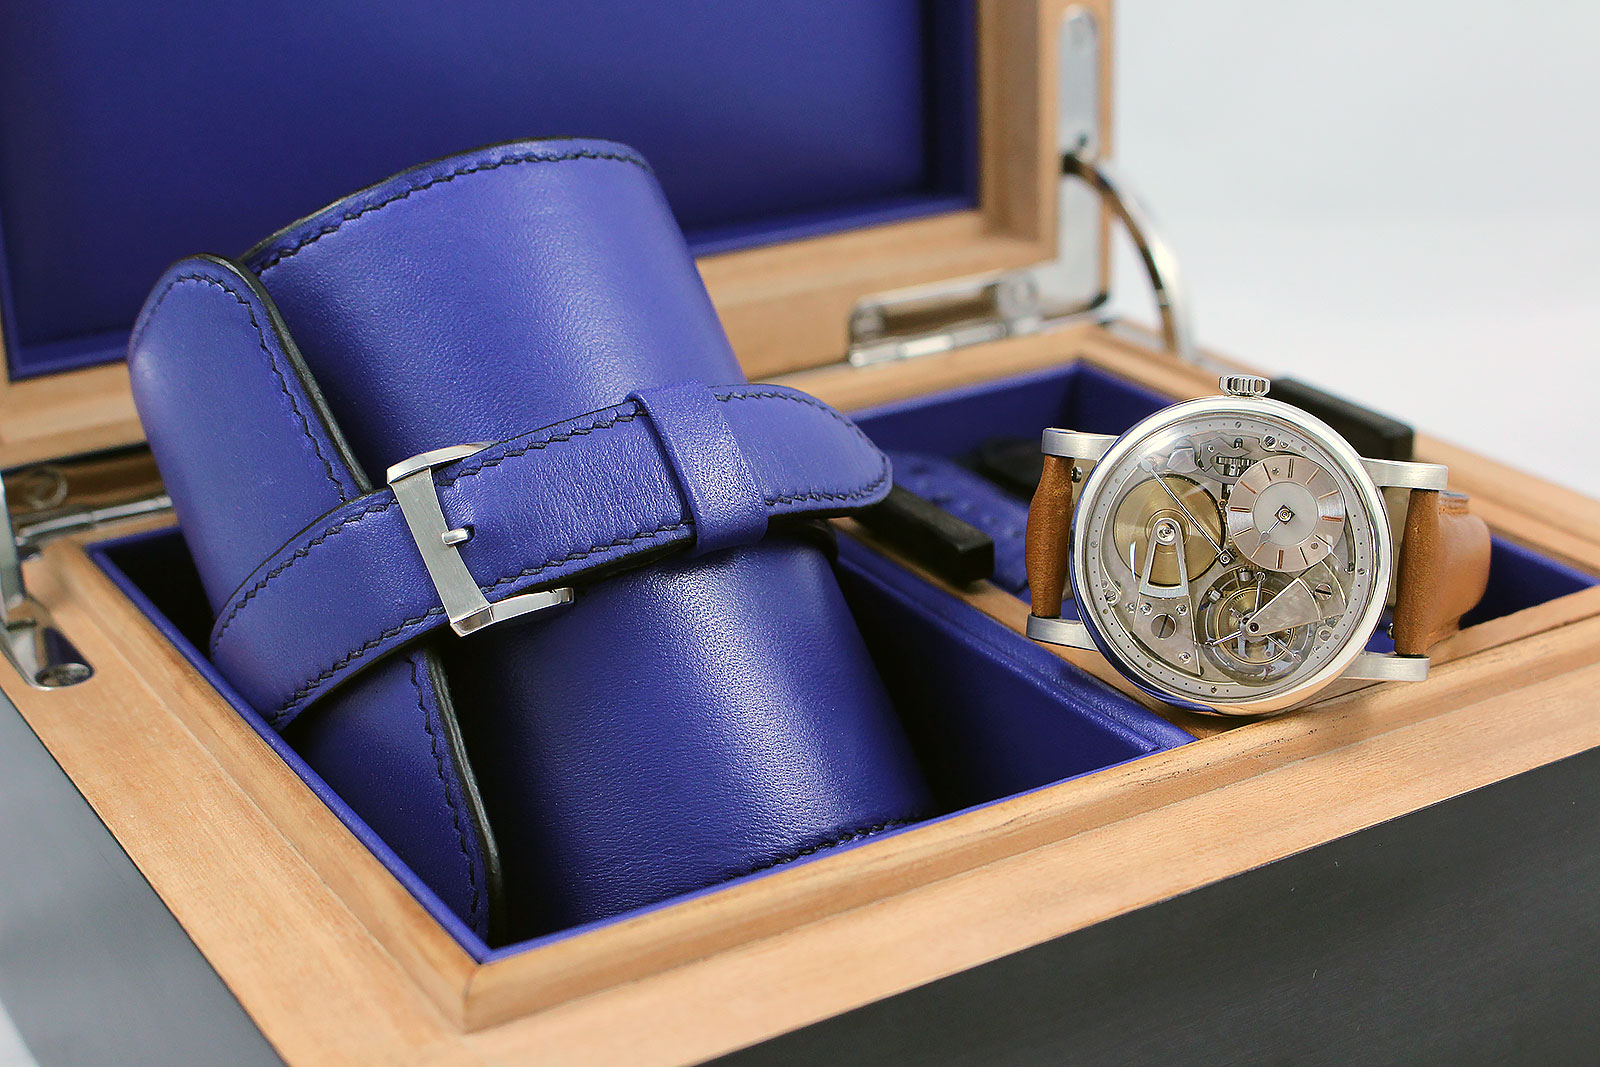 theo auffret tourbillon a paris watch 10